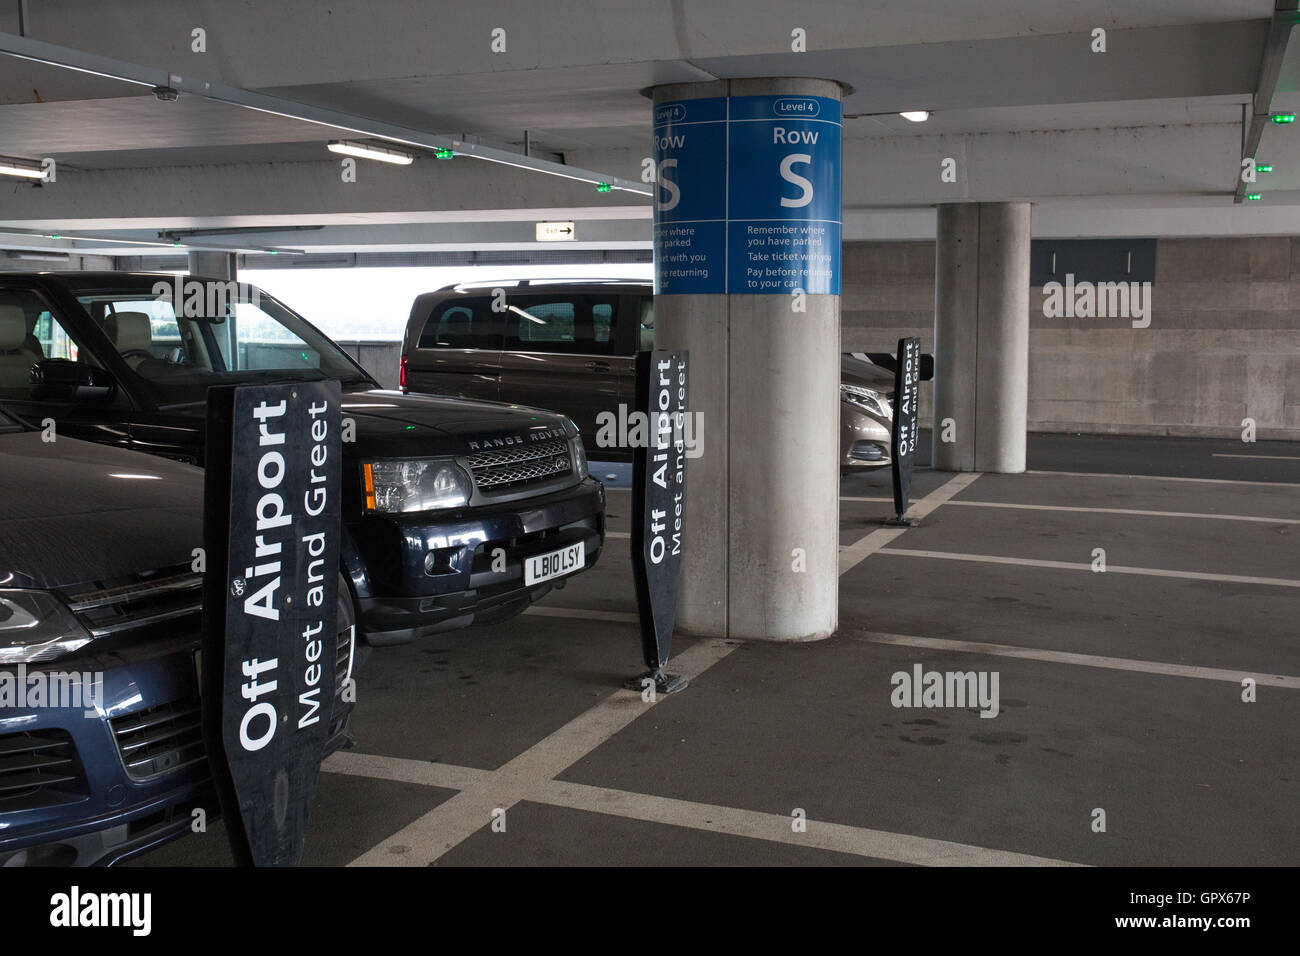 Heathrow Terminal 5 Valet Parking Car Park Stock Photo 117360314